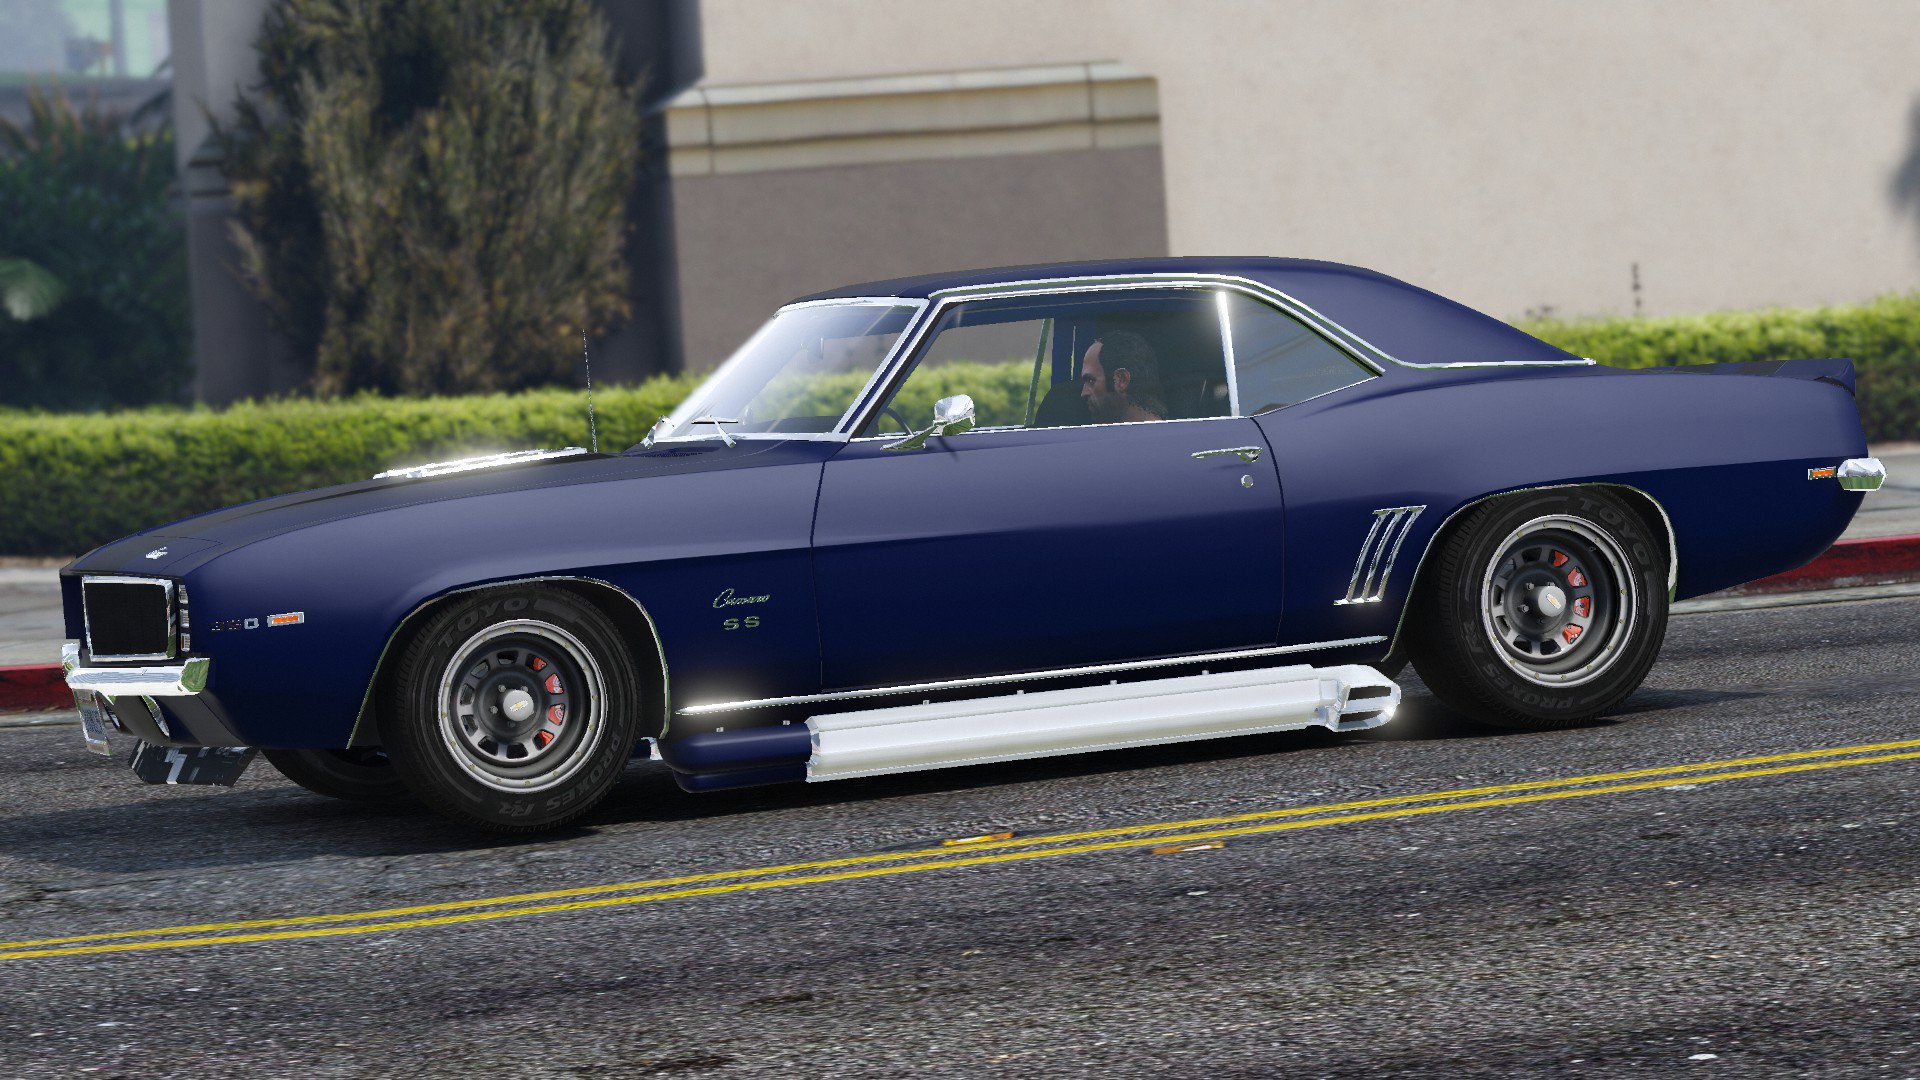 chevrolet camaro ss 1969 add on vehicules pour gta v sur gta modding. Black Bedroom Furniture Sets. Home Design Ideas